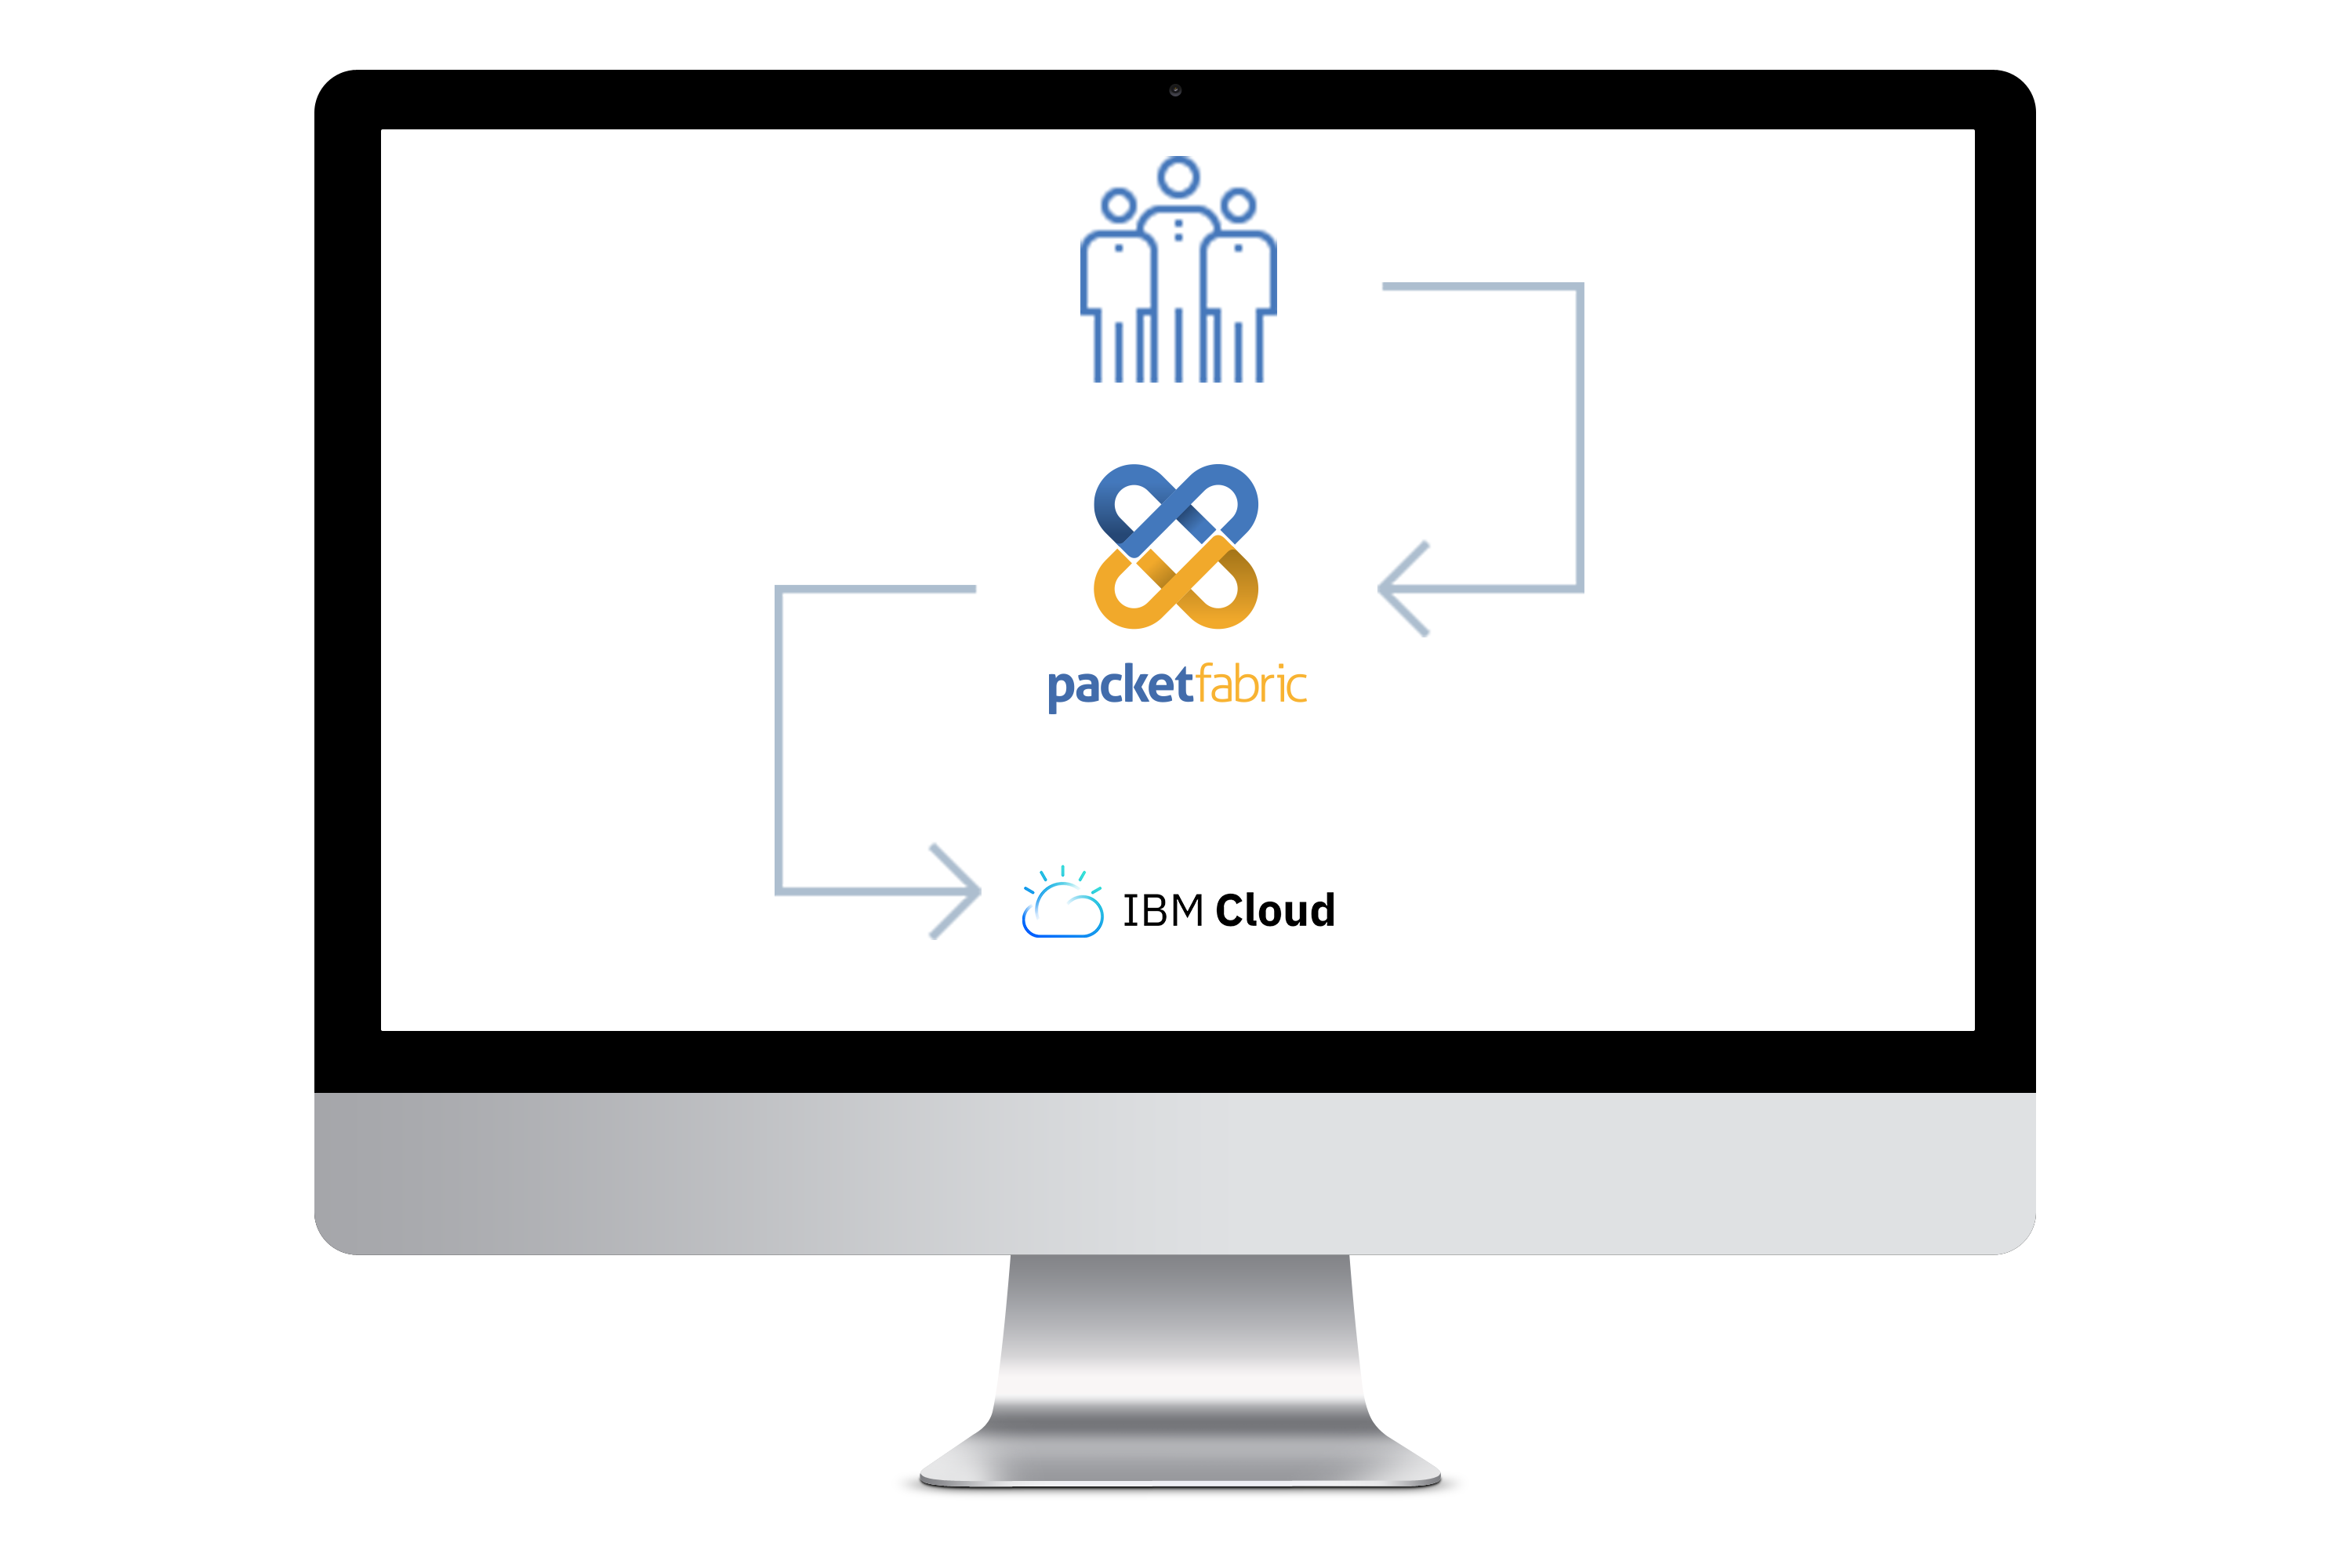 PacketFabric offers direct, secure access to IBM Cloud